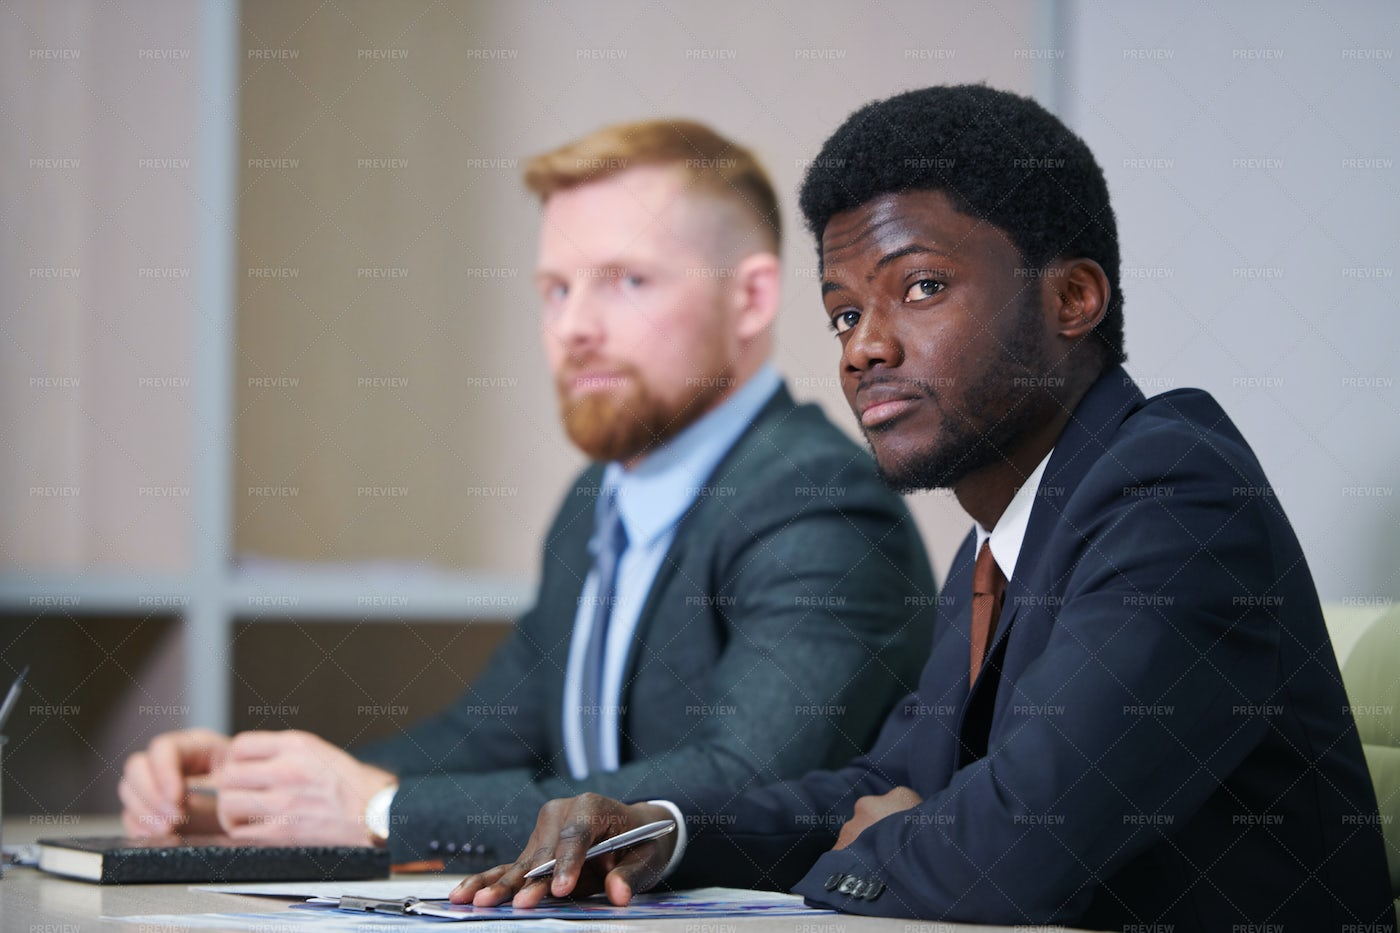 Young African Businessman In Suit...: Stock Photos